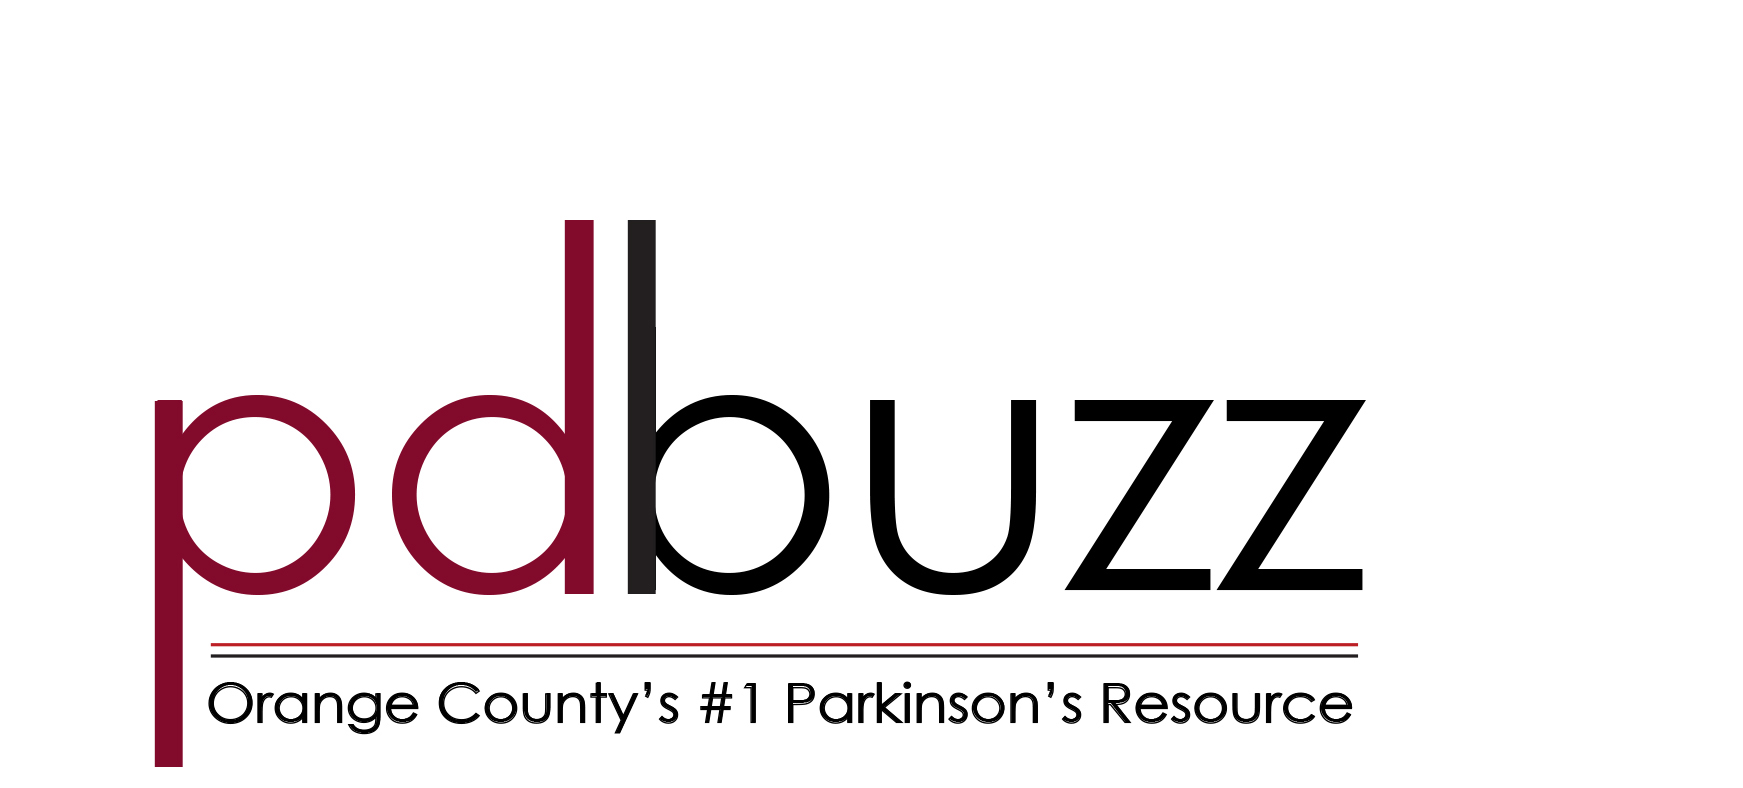 Parkinson's Resources in Orange County